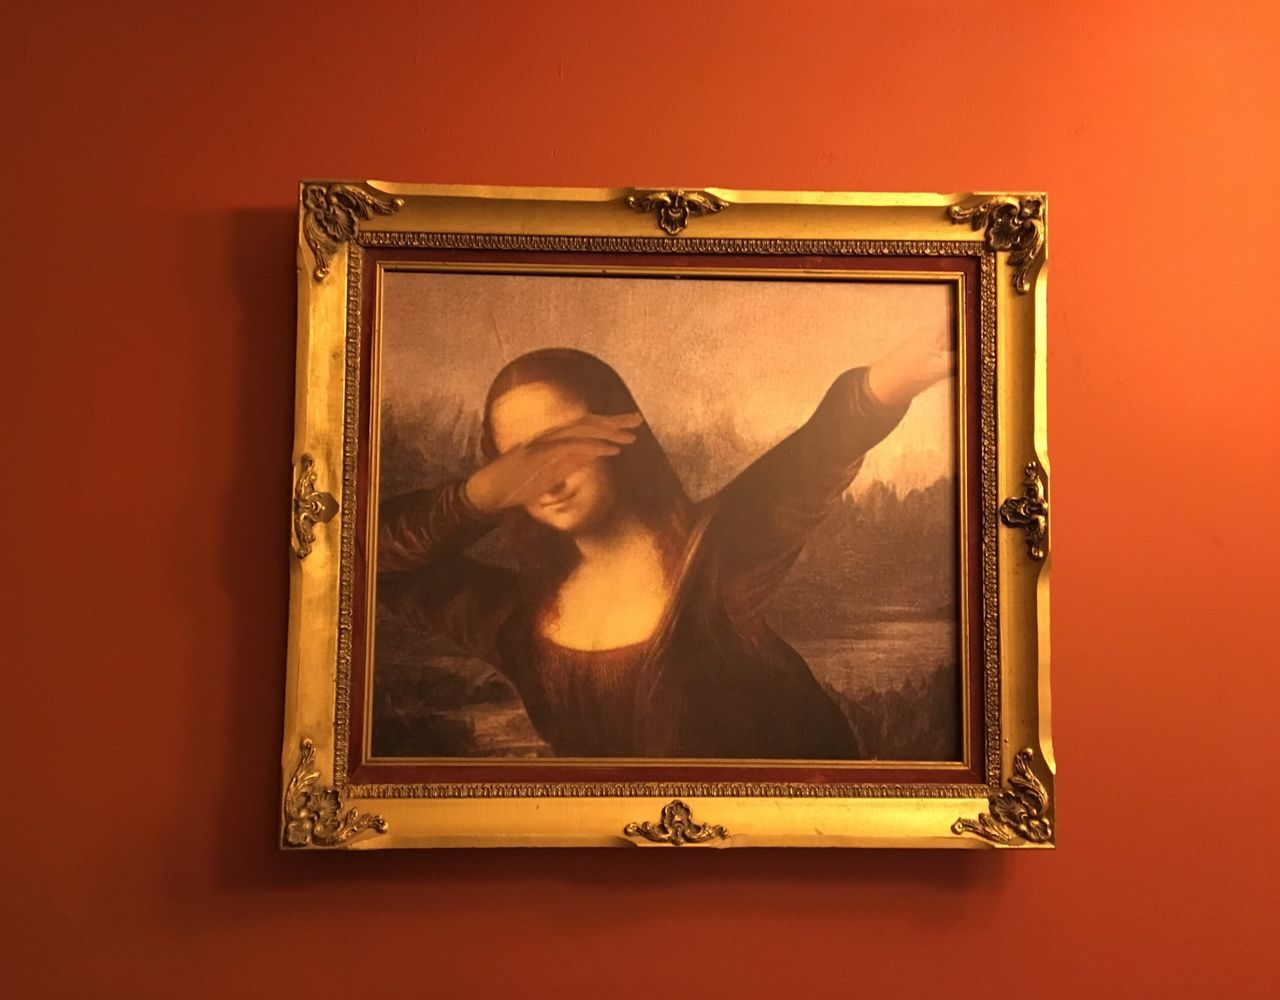 Modern Art Art Dab Monalisa Just Taking Pictures Indoors  Picture Frame People Creativity Justtakingpictures